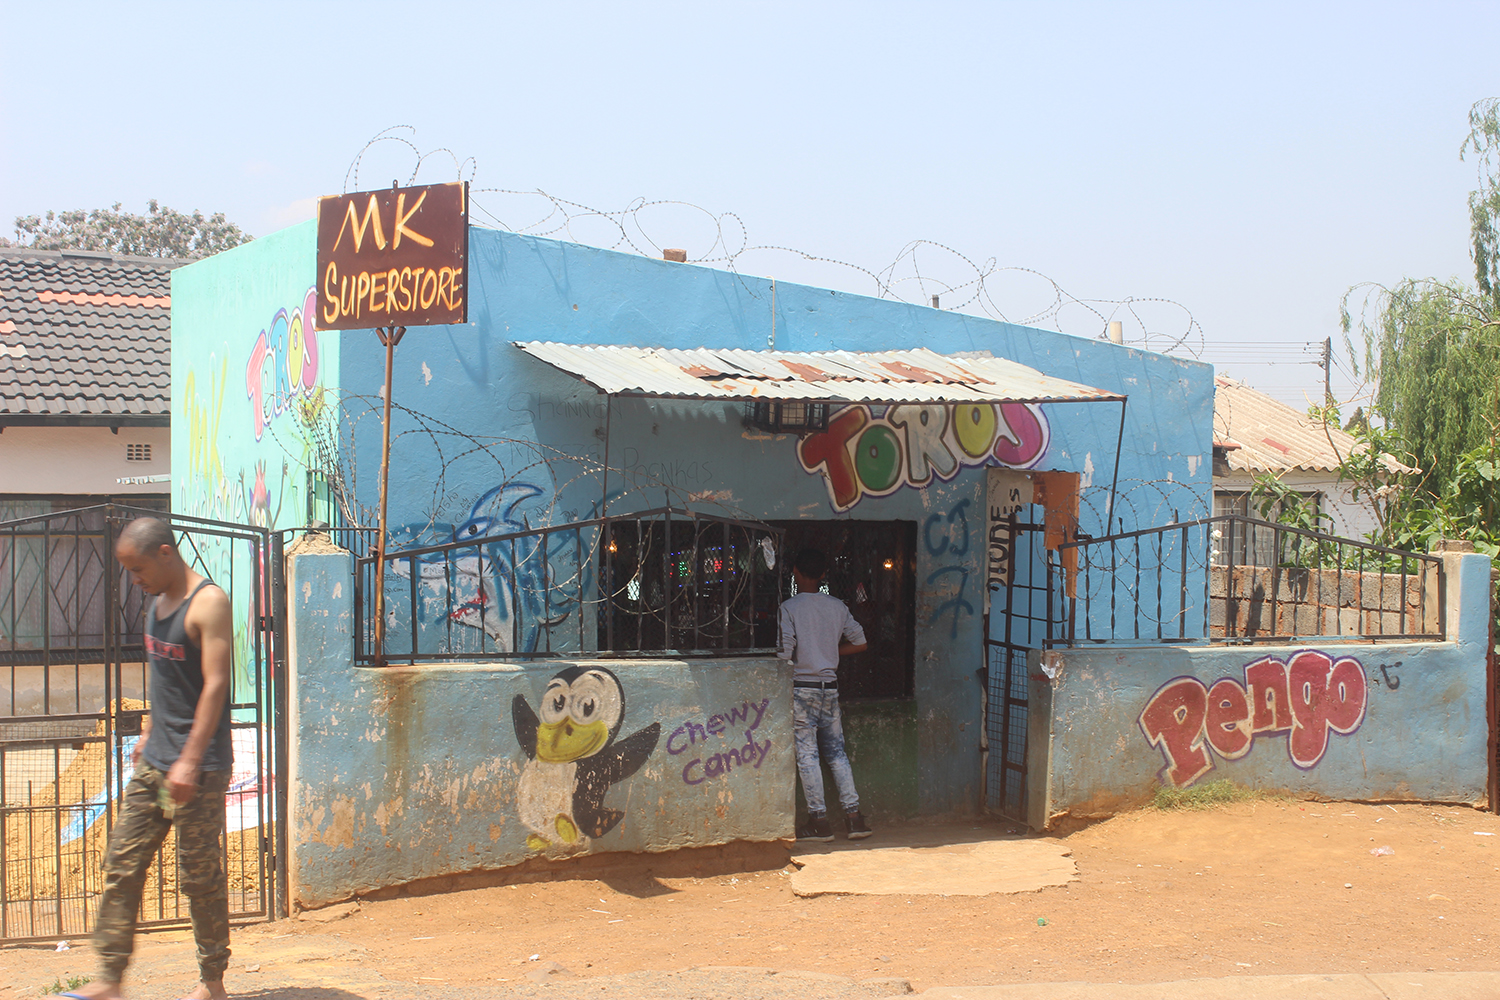 Tuck shop in South Africa